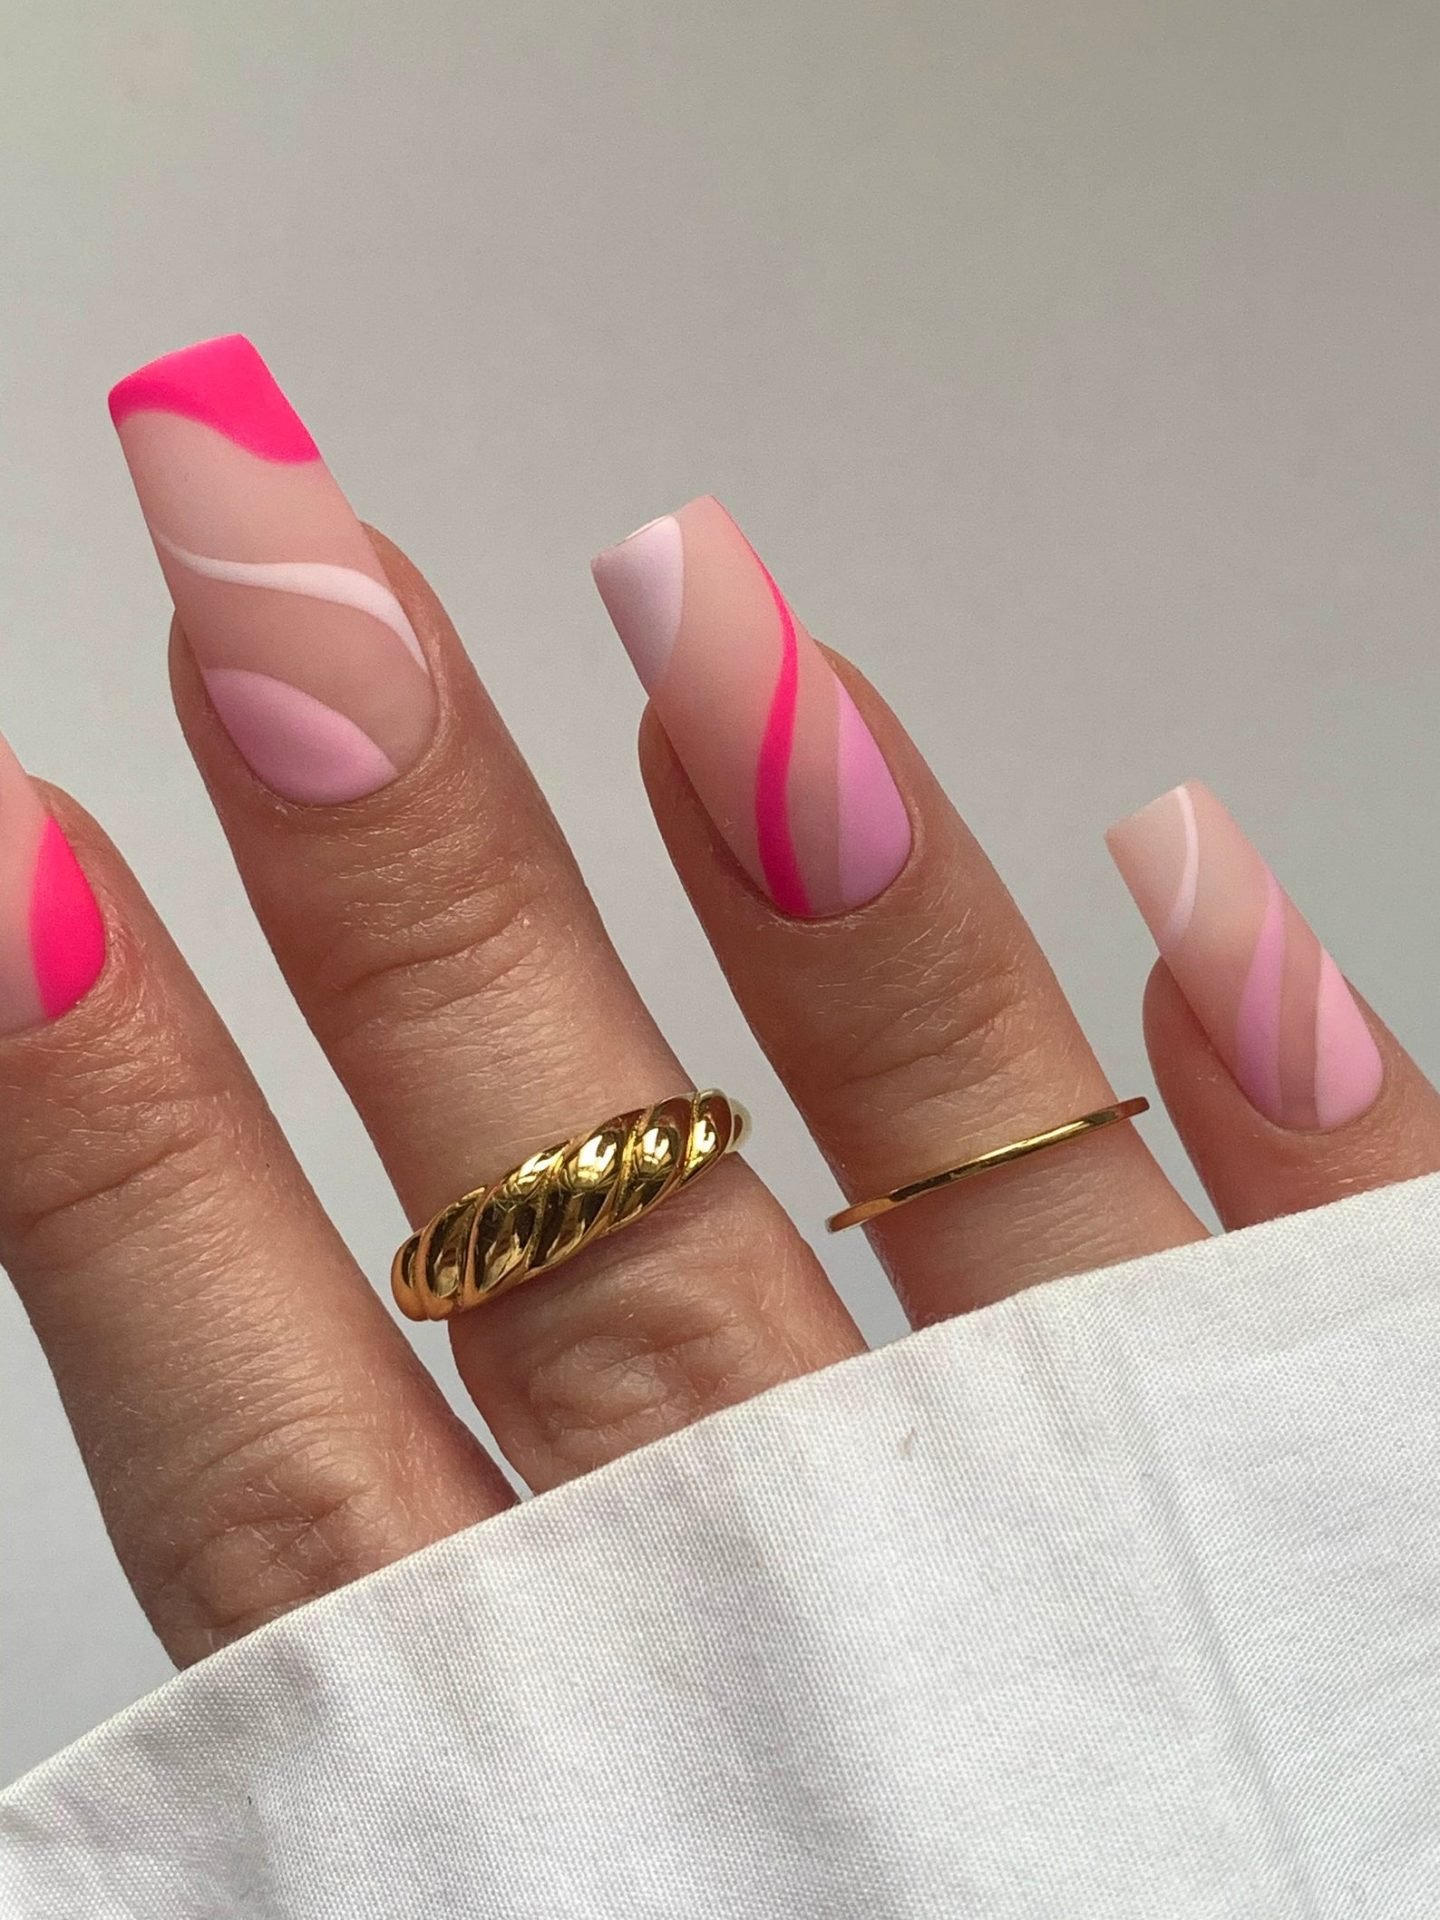 Pink abstract nails with swirls